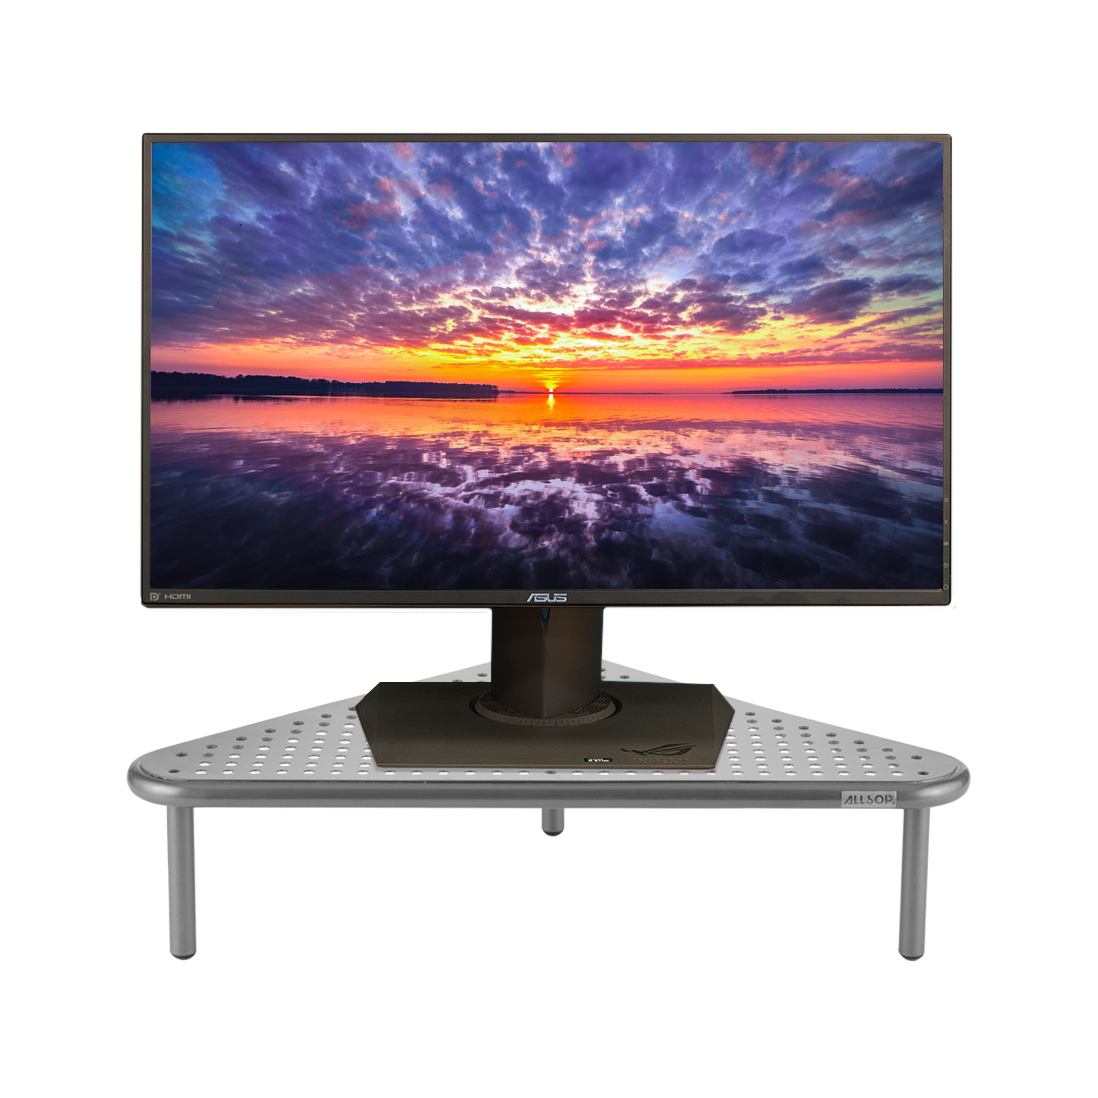 High Quality Monitor Stand, Corner Stand, Corner Monitor Stand, Metal Monitor Stand,  Metal Corner Great Pictures